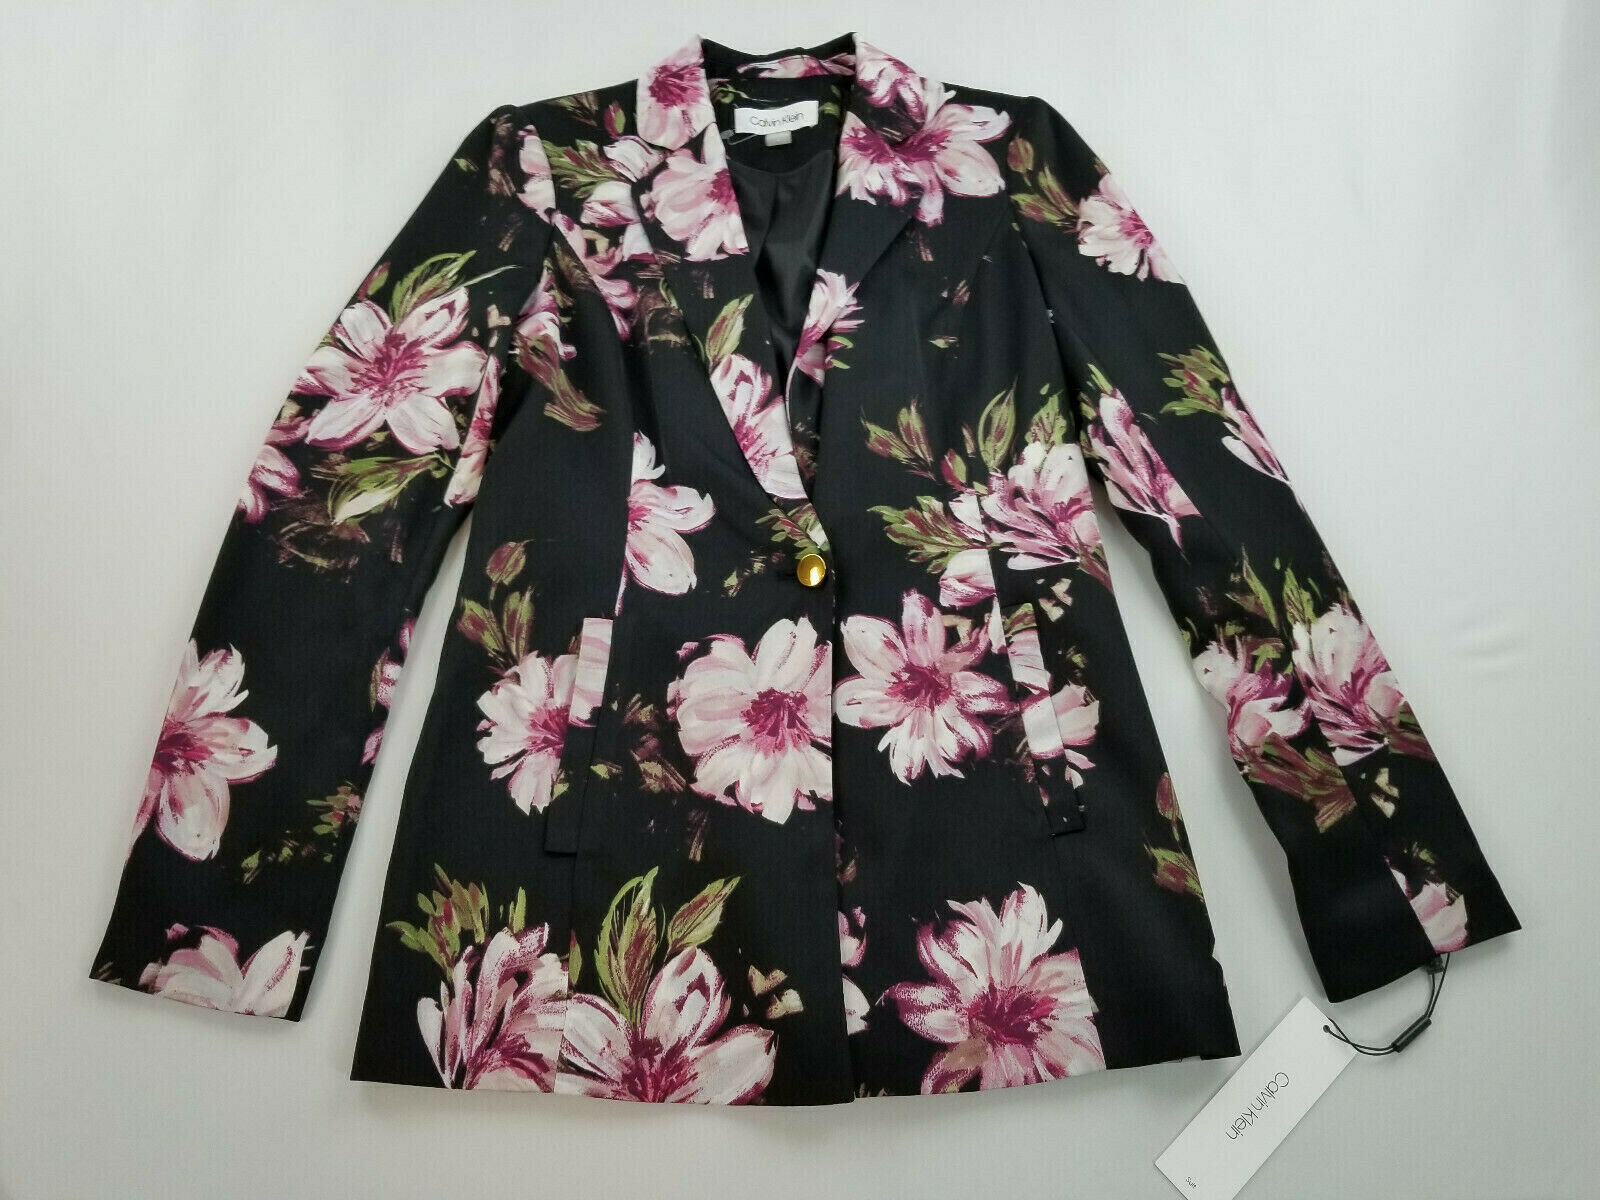 Primary image for new CALVIN KLEIN women dress jacket S87JV40F black purple flowers 4 MSRP $139